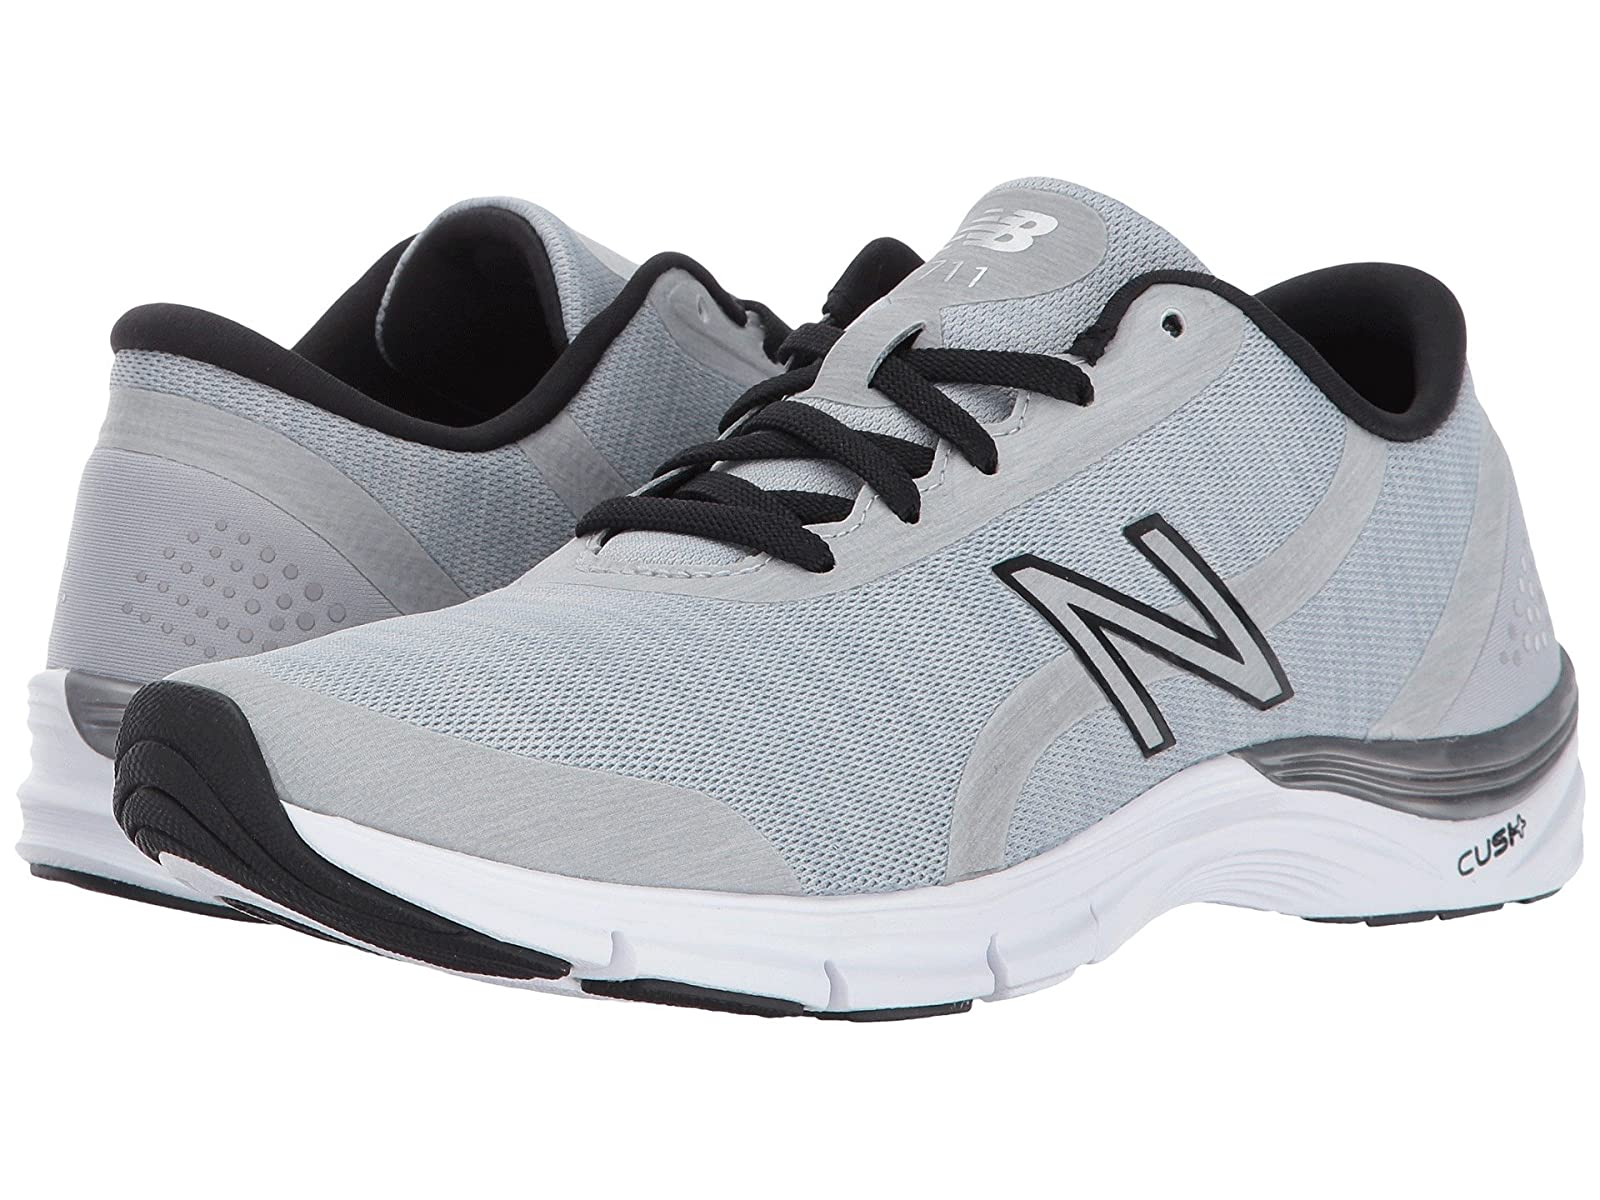 New Balance WX711Cheap and distinctive eye-catching shoes